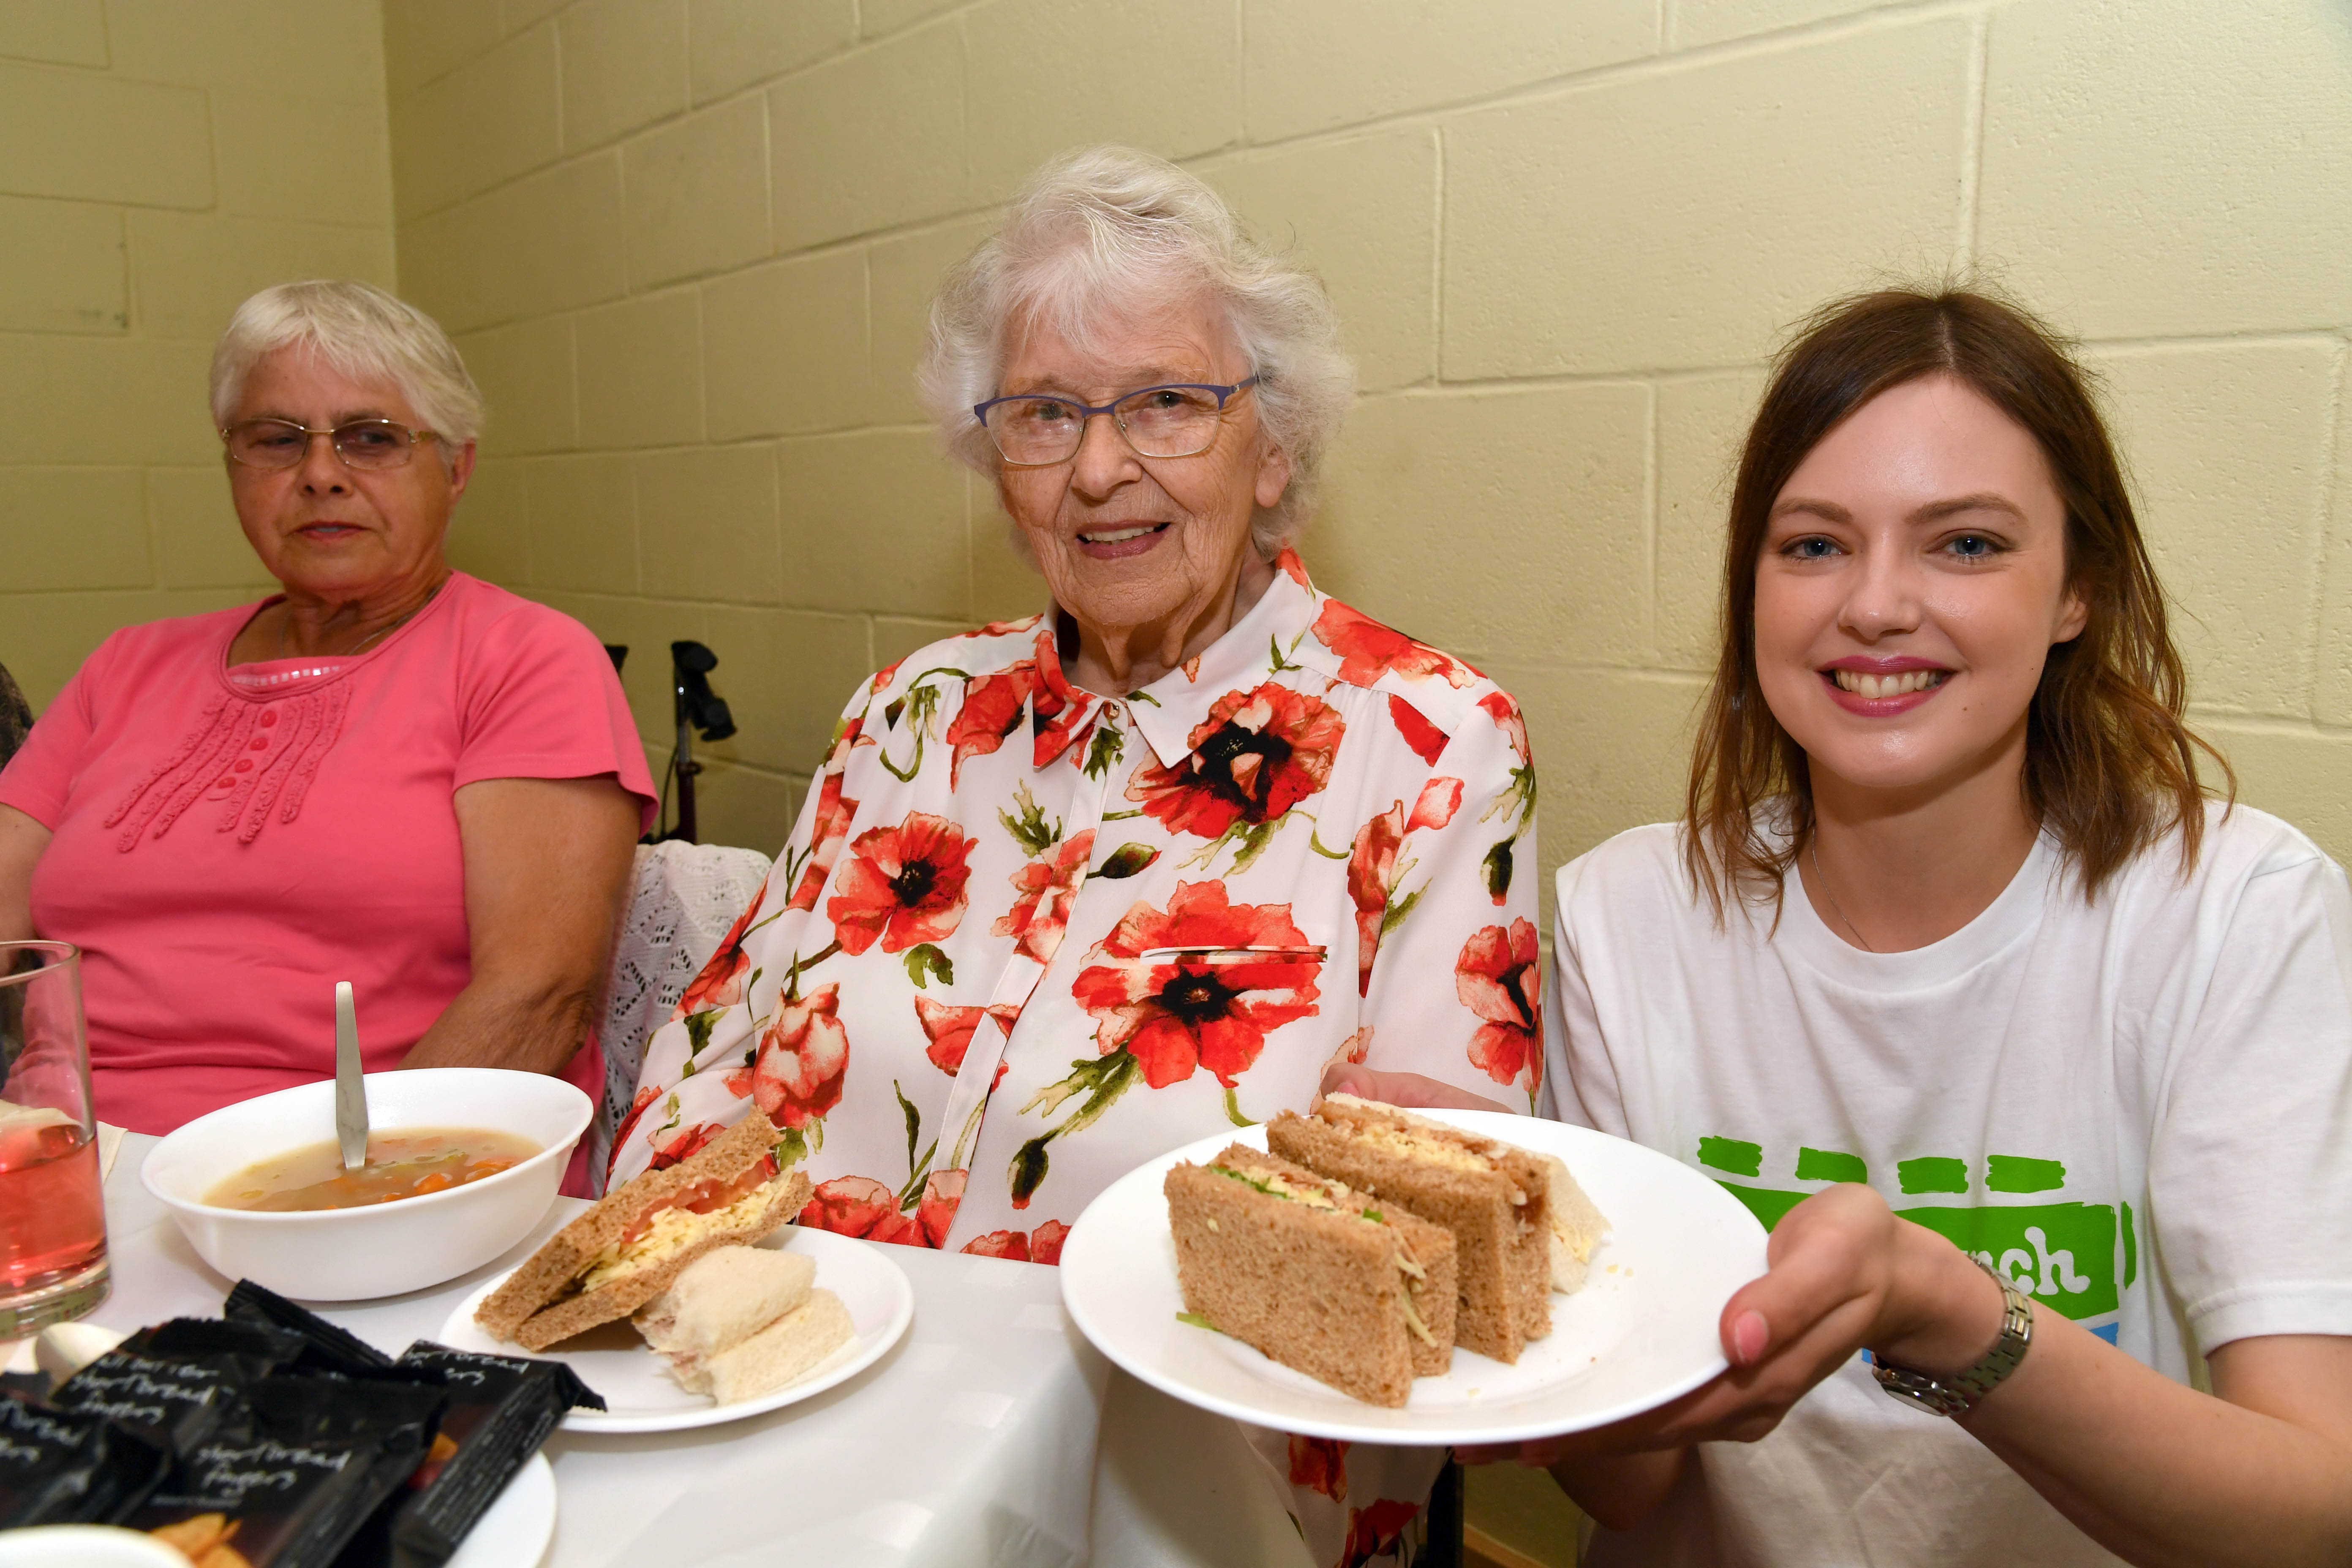 Tanita Addario serves up a plate of sandwiches with Frances Norrie (L) and Ellen Massie at the Big Lunch at the Mustard Seed cafe.